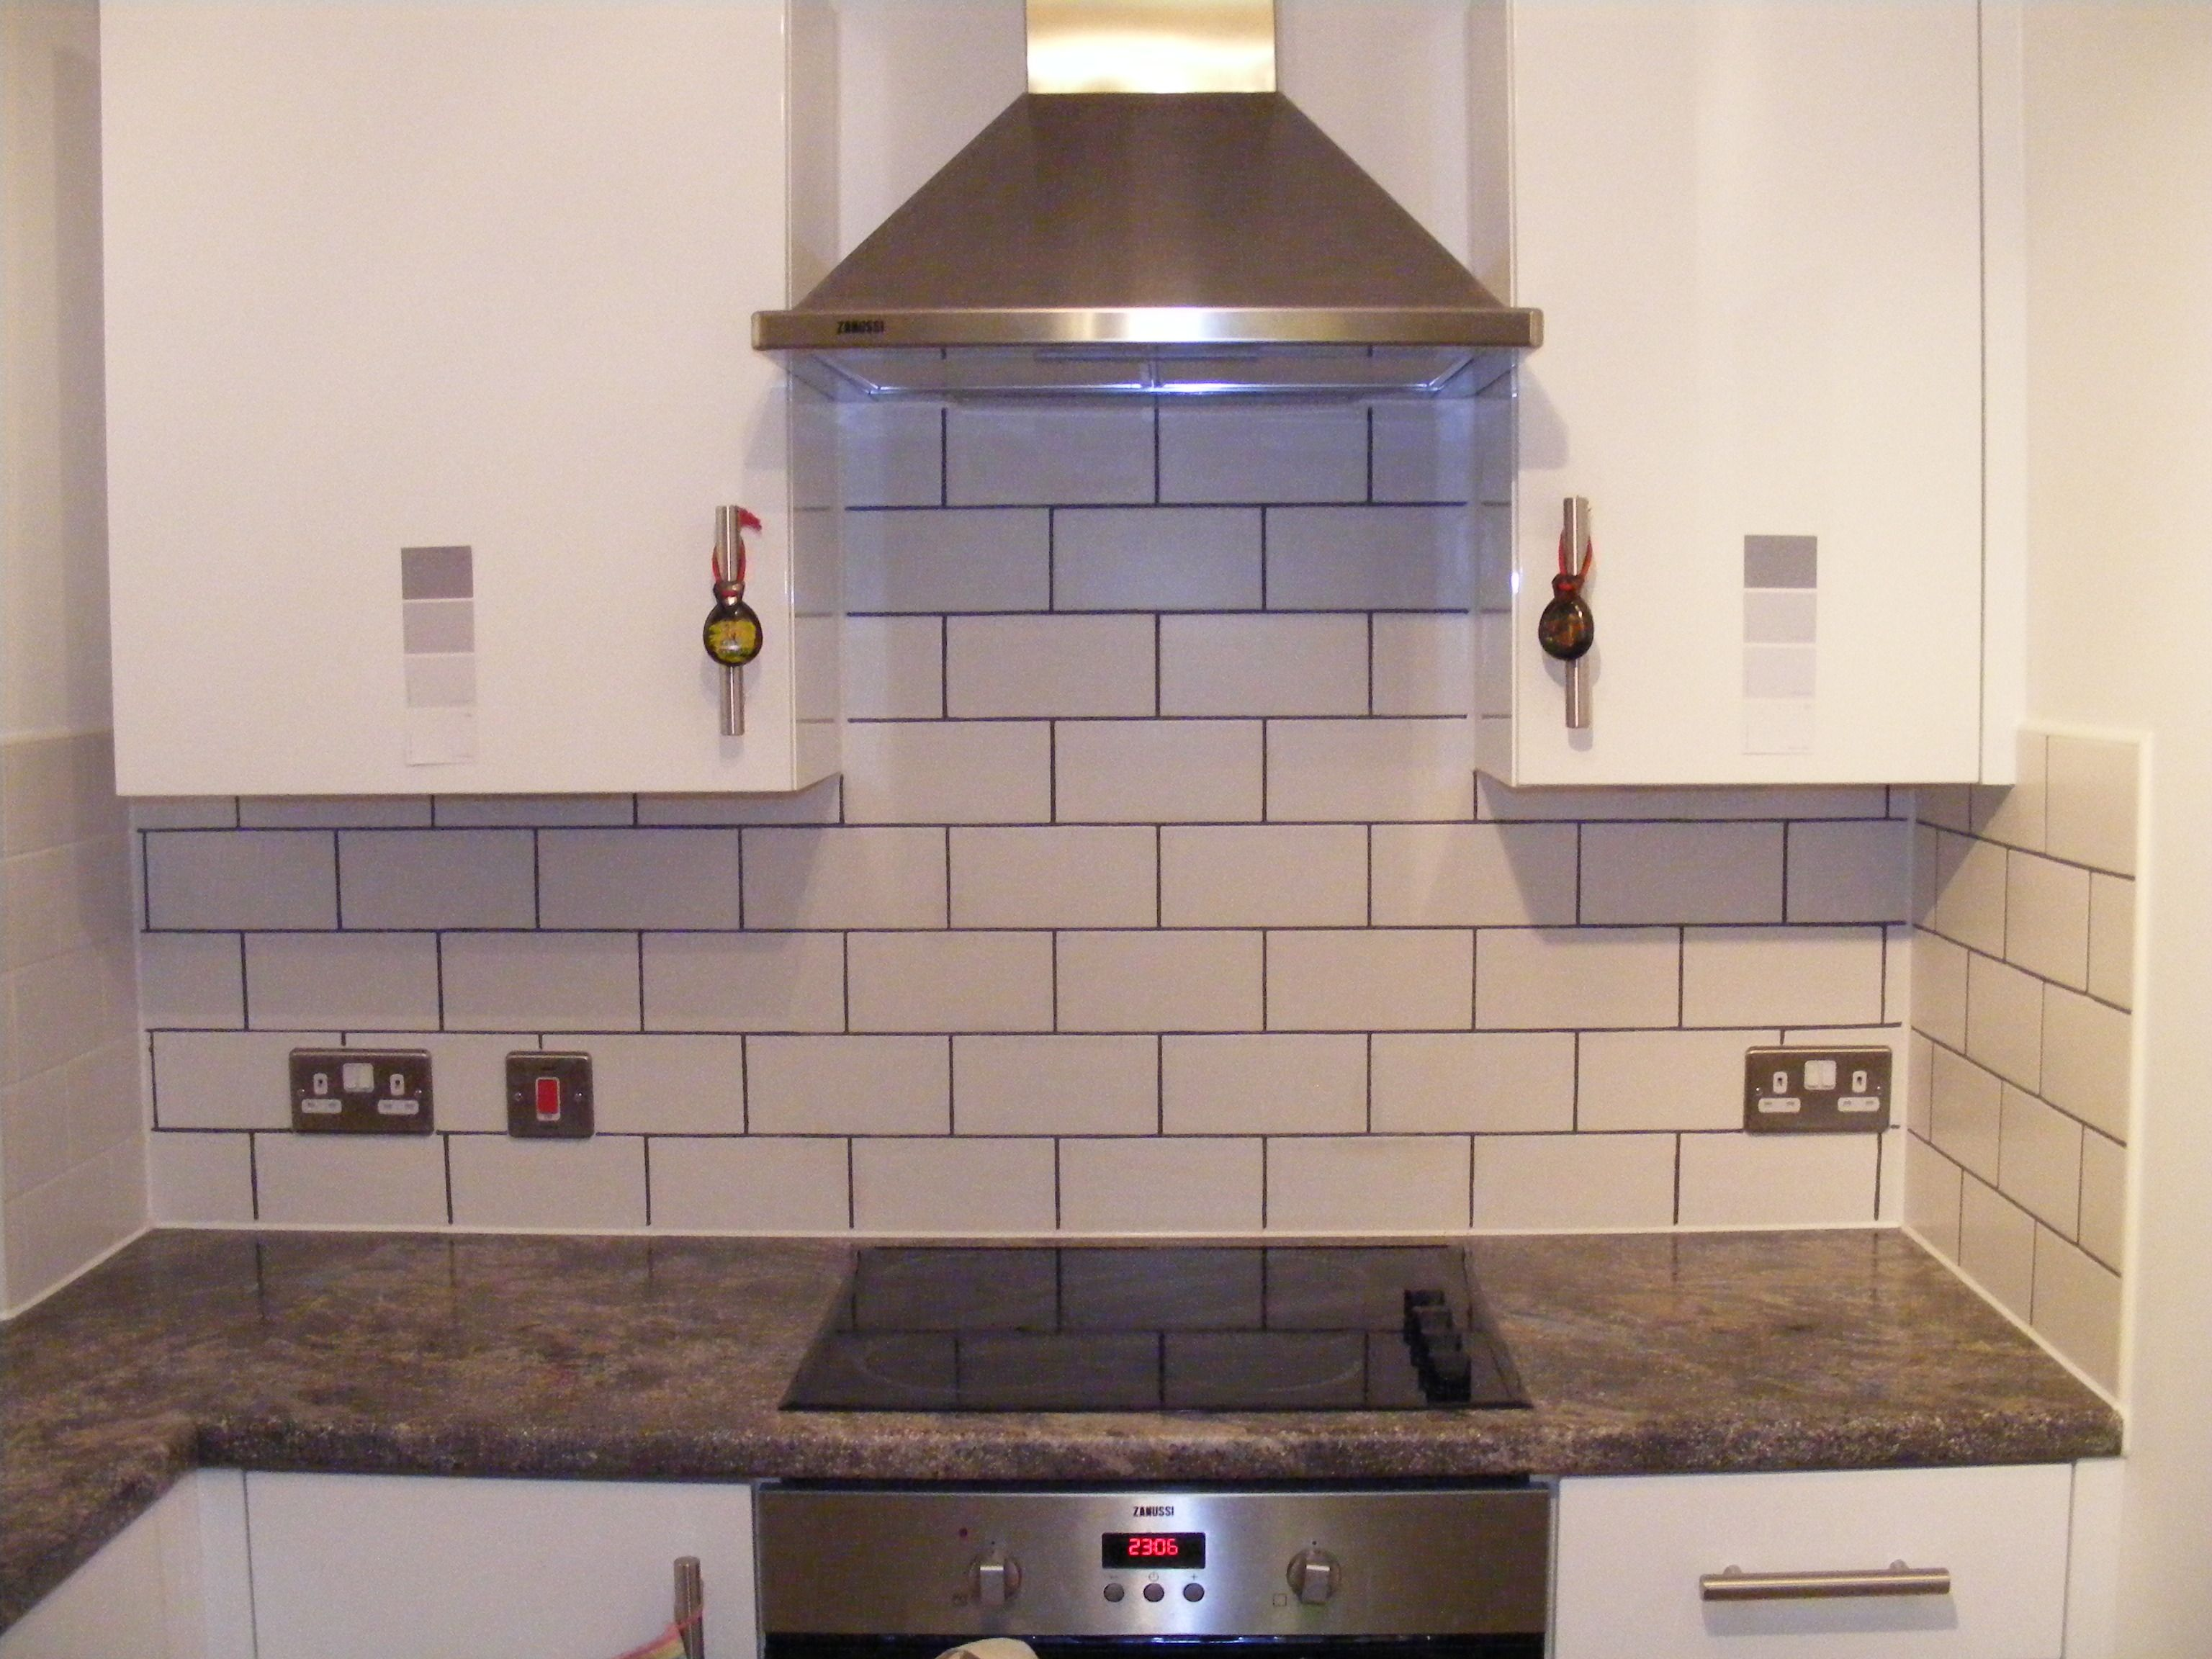 Kitchen After Dark Grey Grout Pen Applied To All Tile Grout Took About 2 Hours Grout Pen Grey Grout Tile Grout